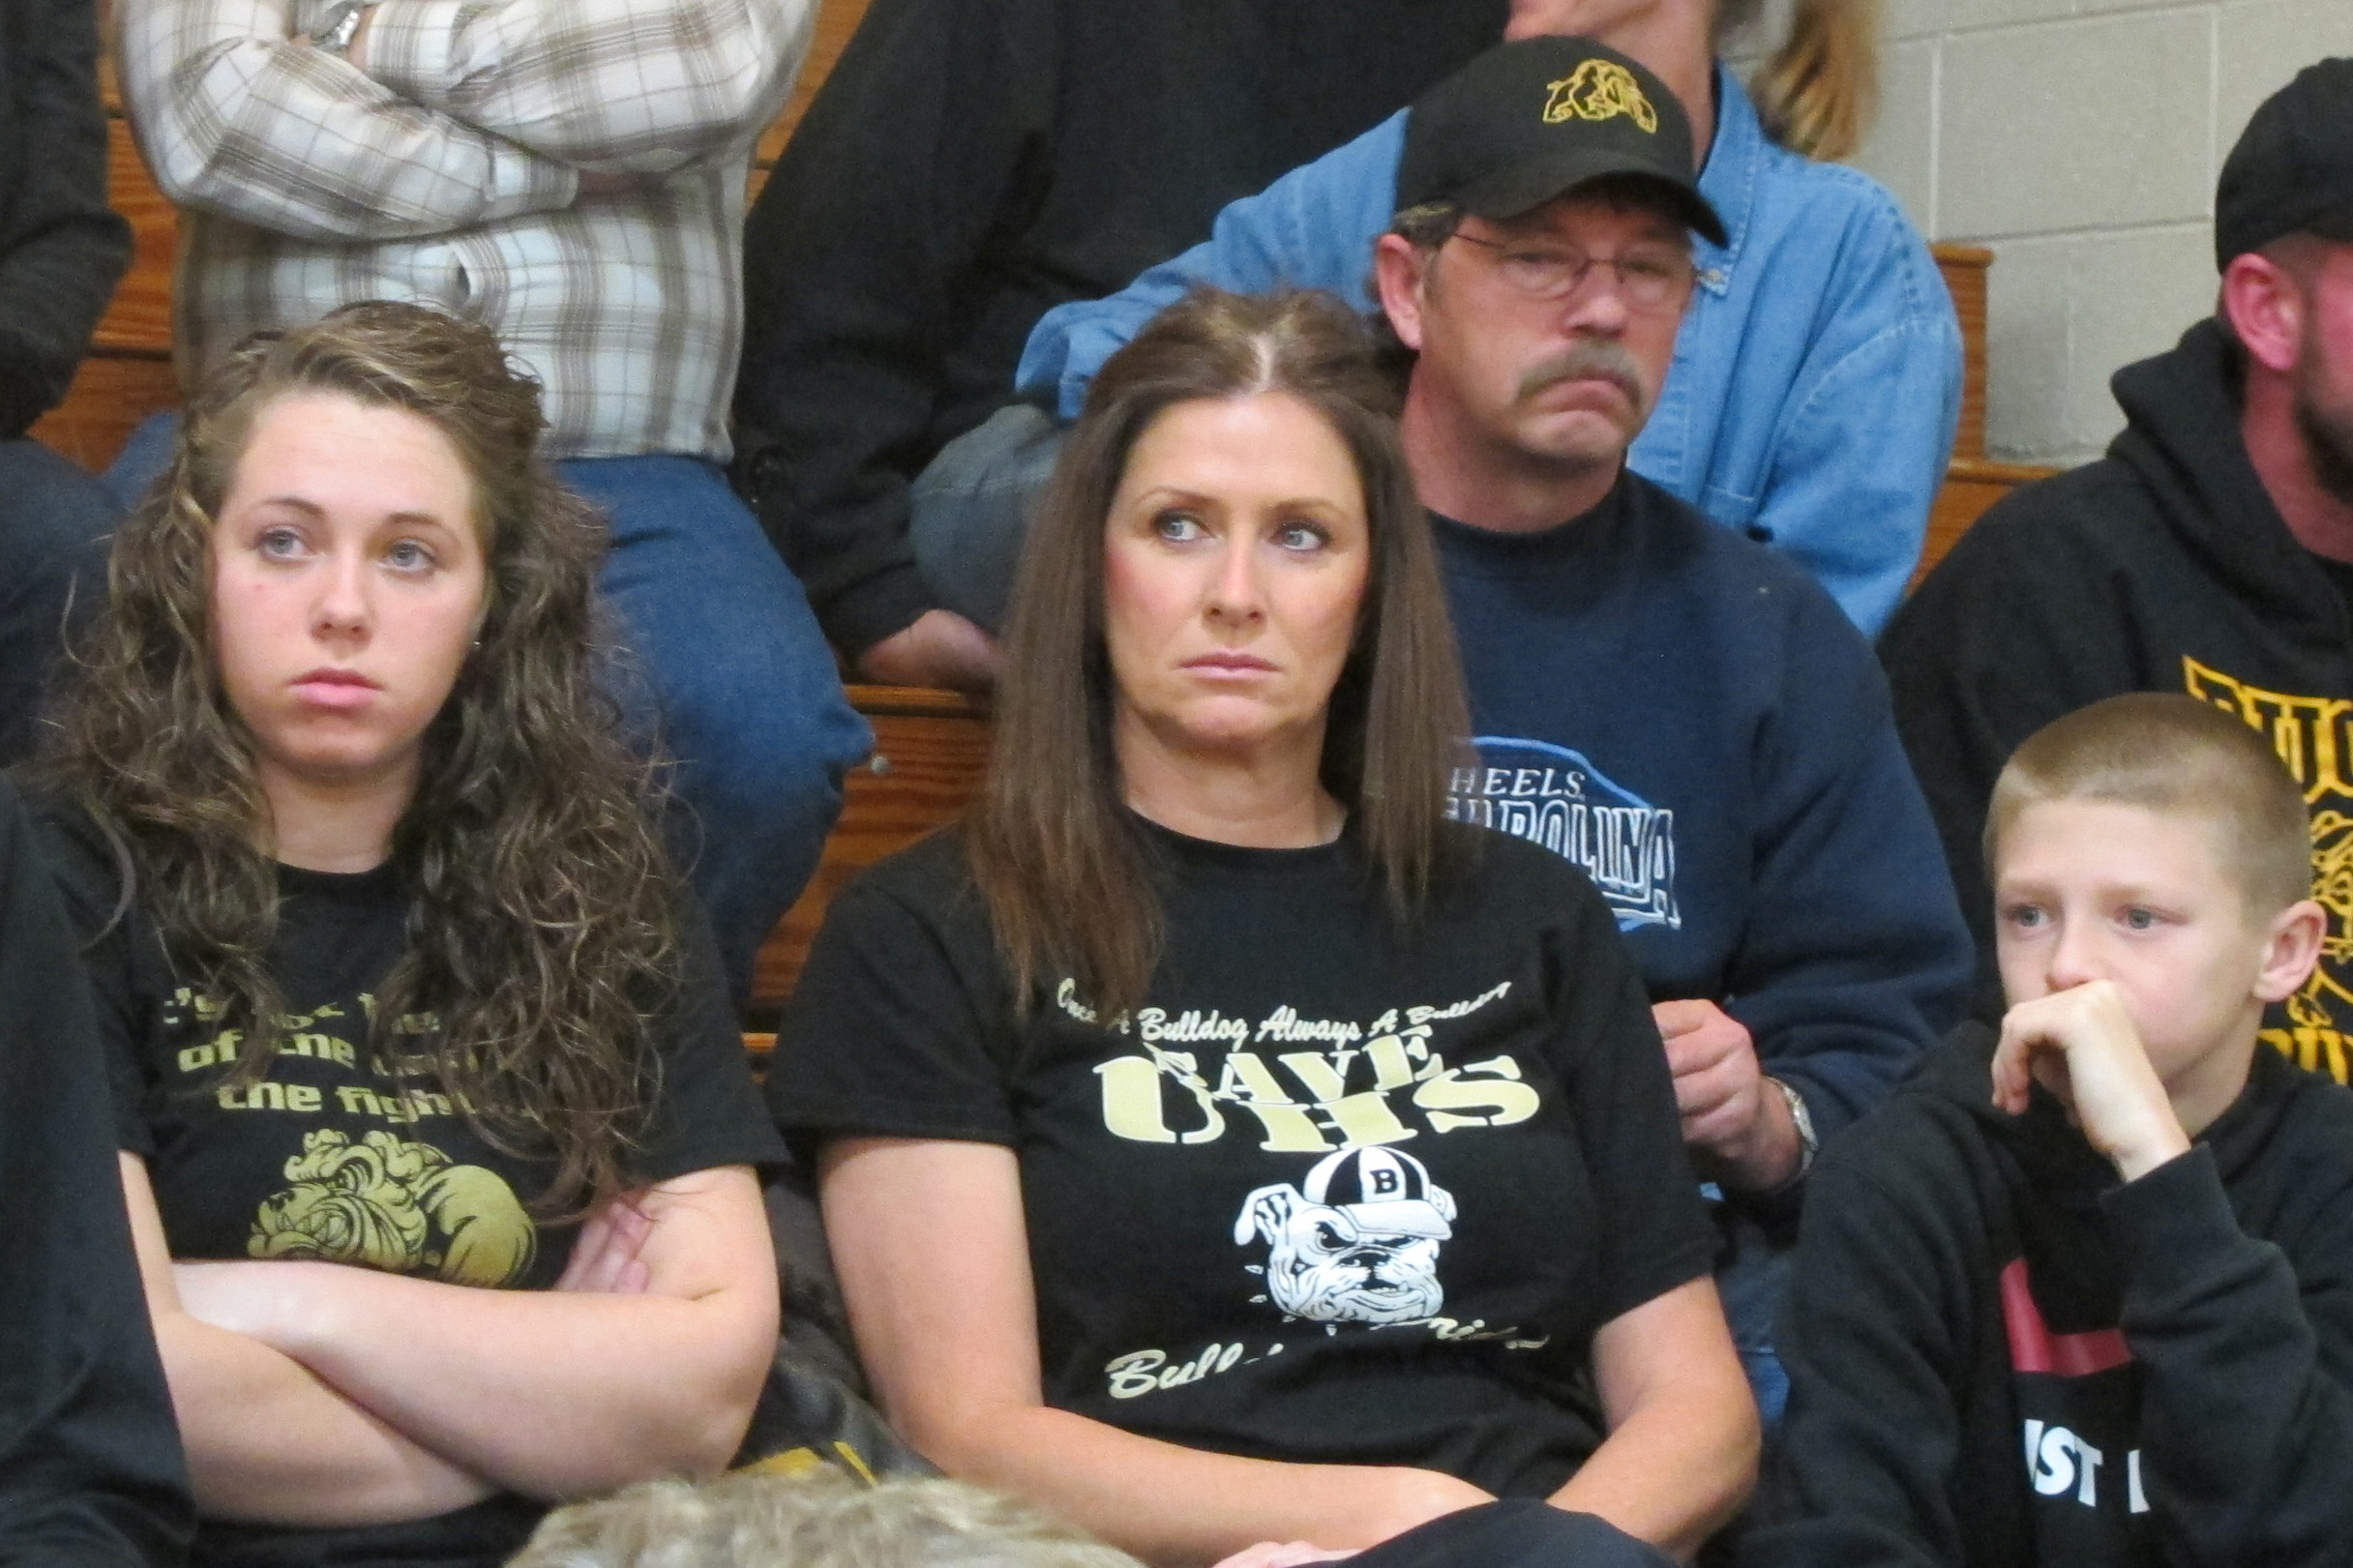 Supporters of keeping Union Junior-Senior High School and Dugger Elementary open listen during a Northeast School Corporation Board of Trustees meeting.